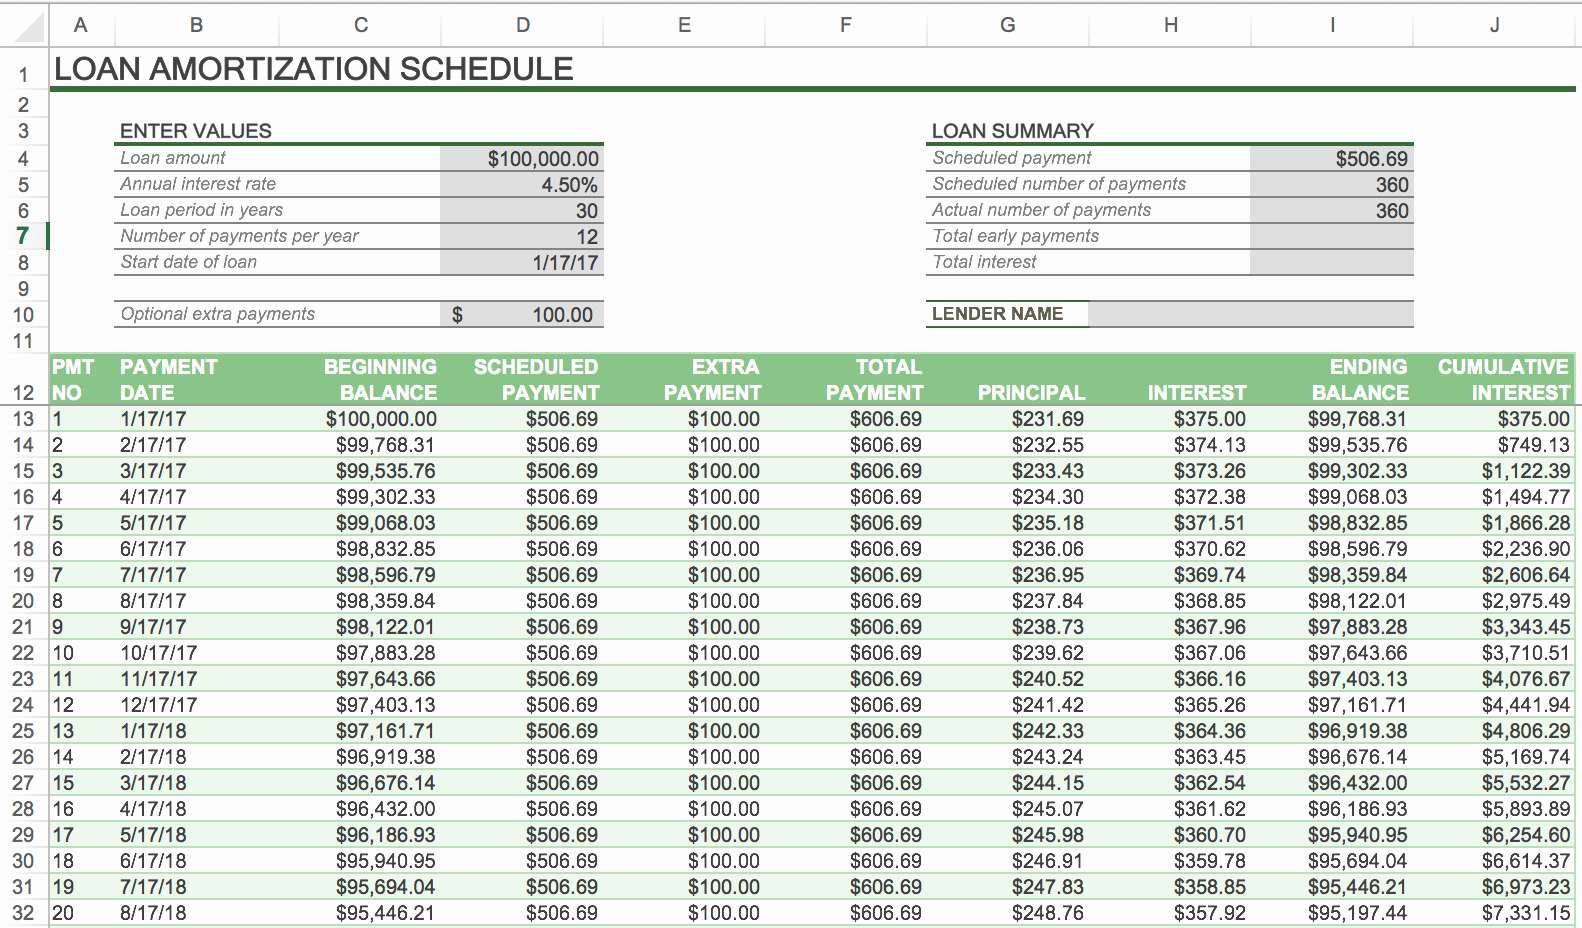 Excel Amortization Schedule Template Inspirational How to Create An Amortization Schedule